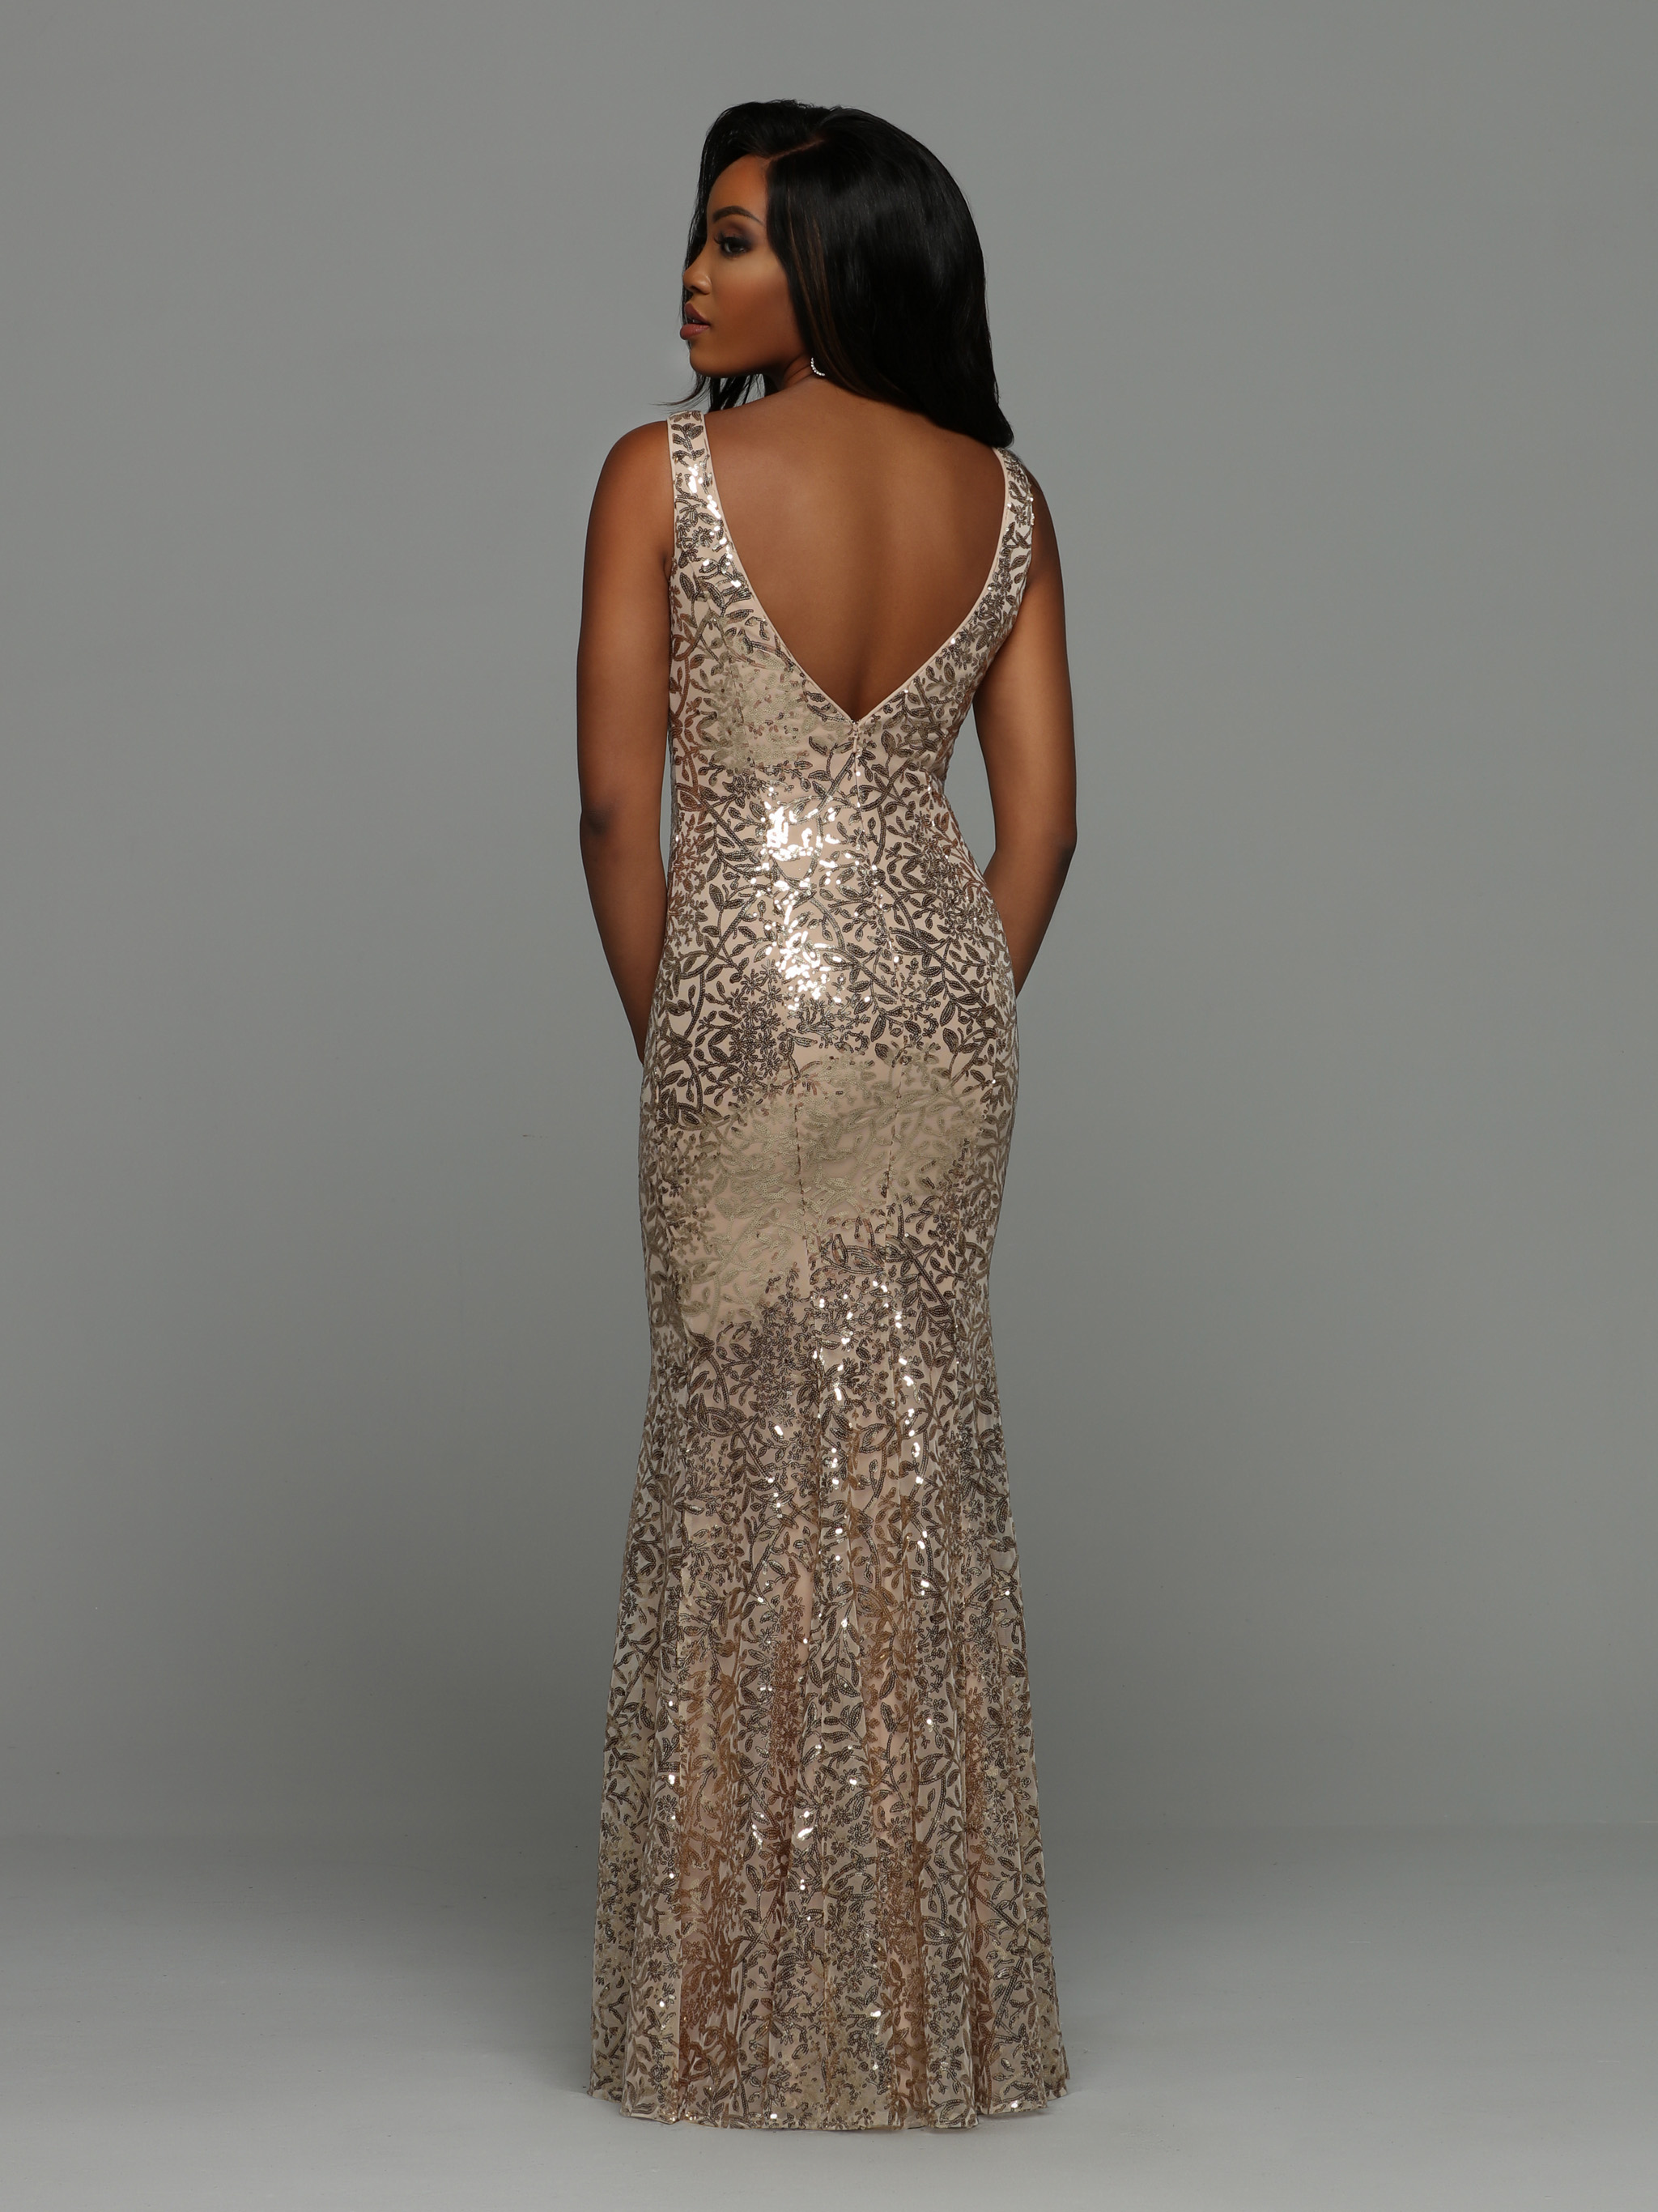 Image showing back view of style #72008